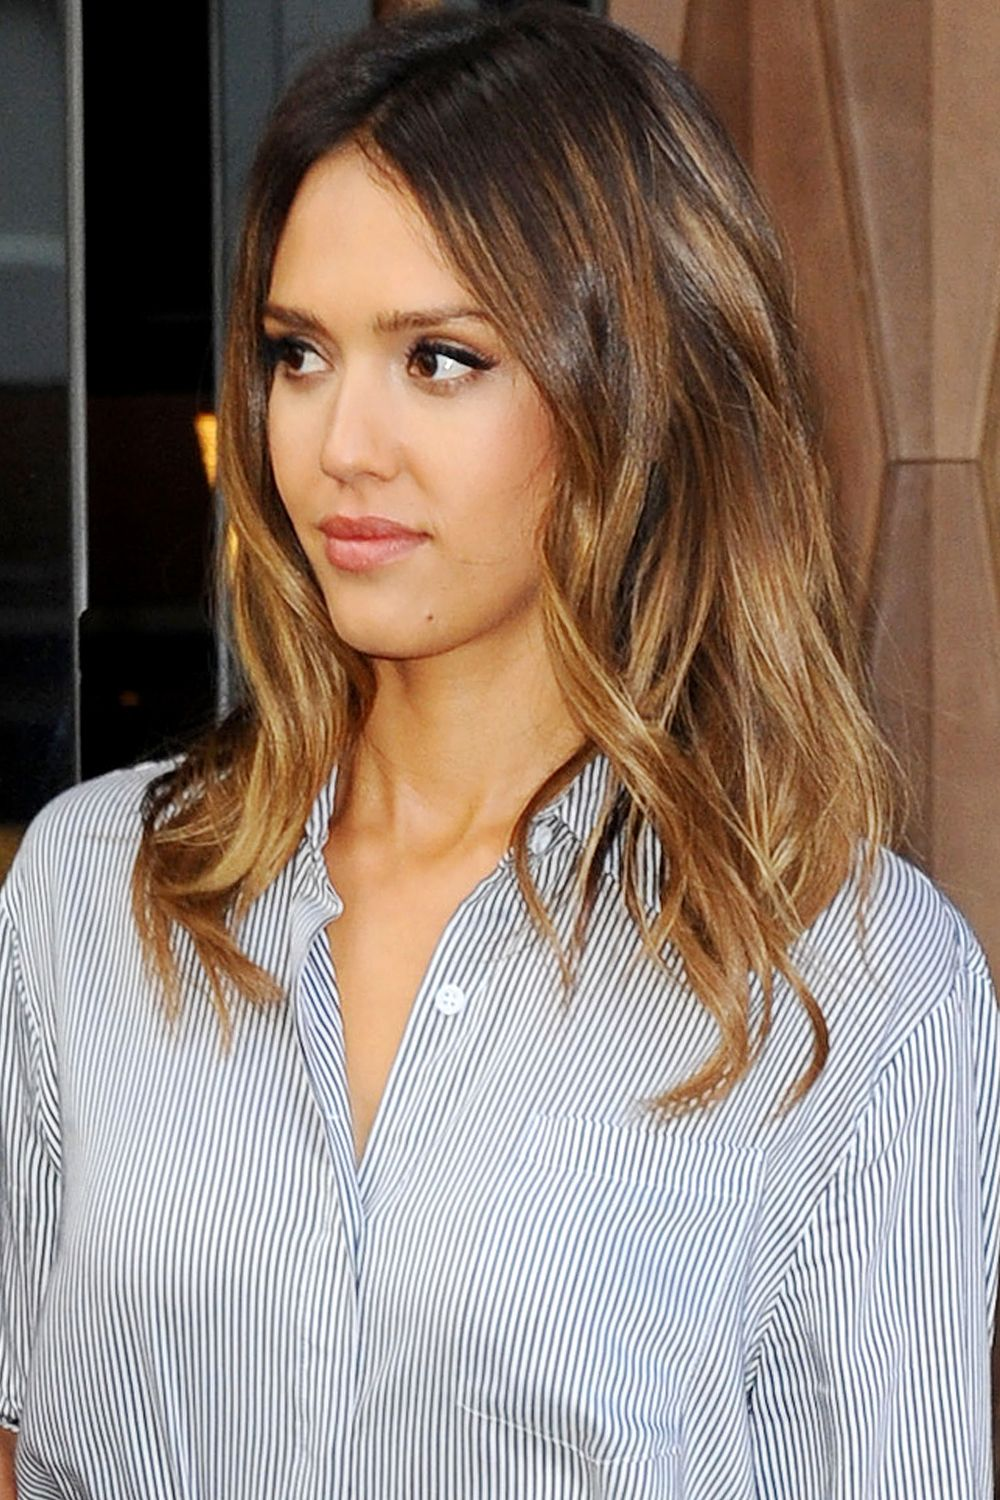 Image from http://vistaarc.com/wp-content/uploads/2015/03/mid-length-fresh-hairstyles-for-fine-hair-2013-midlength-haircuts-style.jpg.